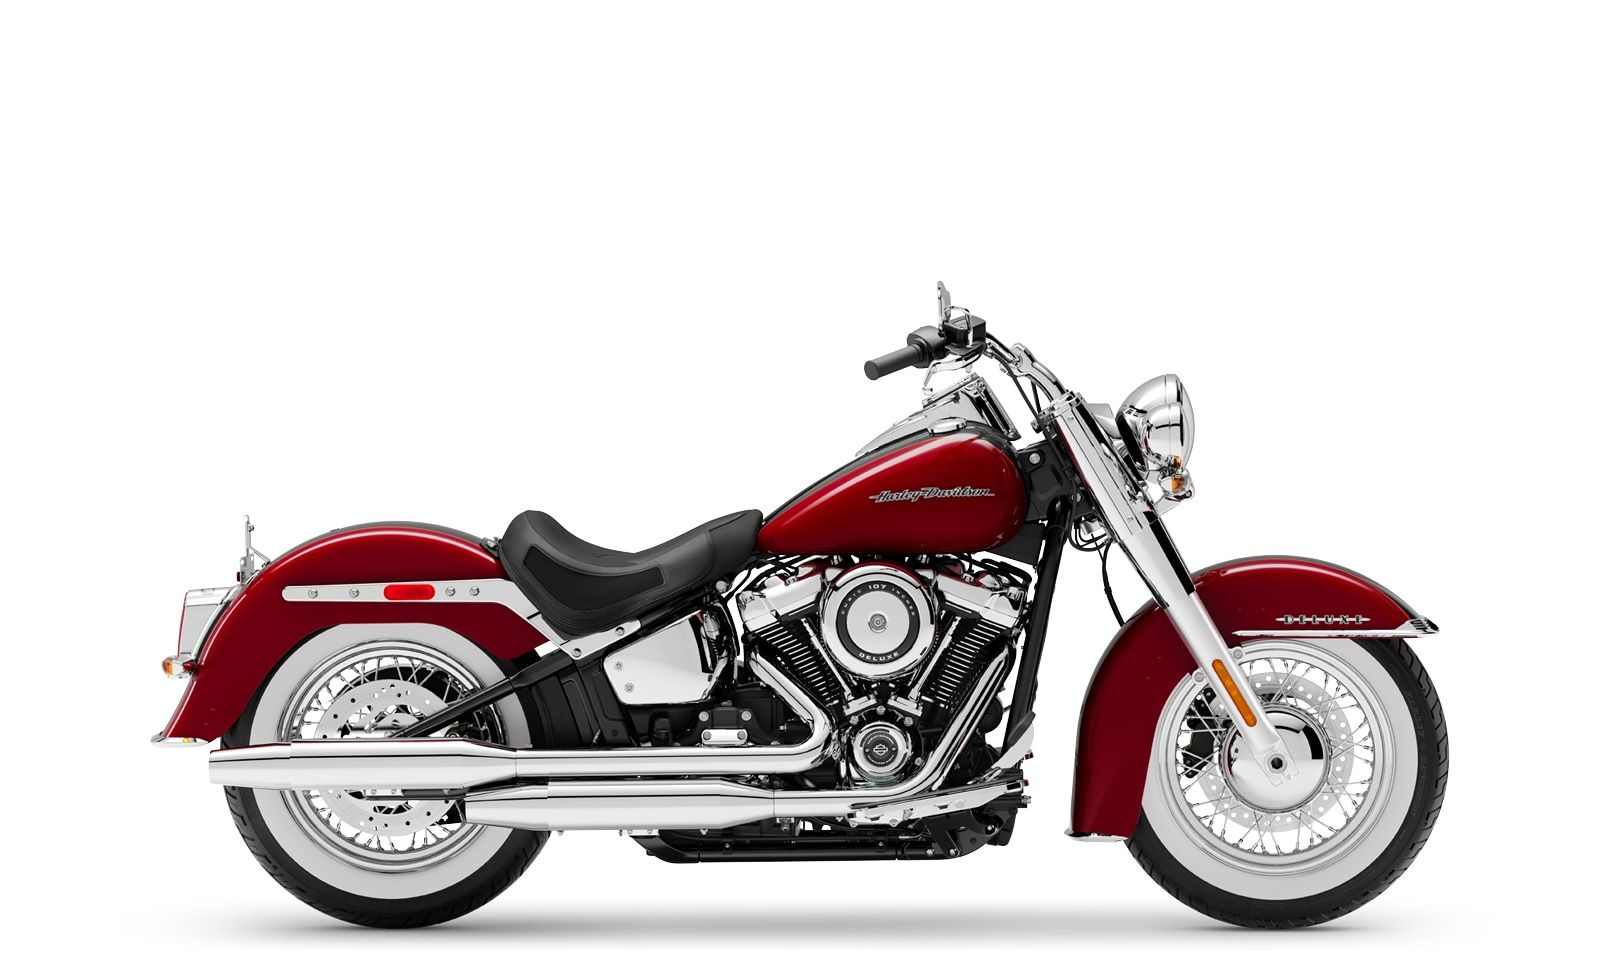 A bright, nostalgic boulevard cruiser that turns heads and